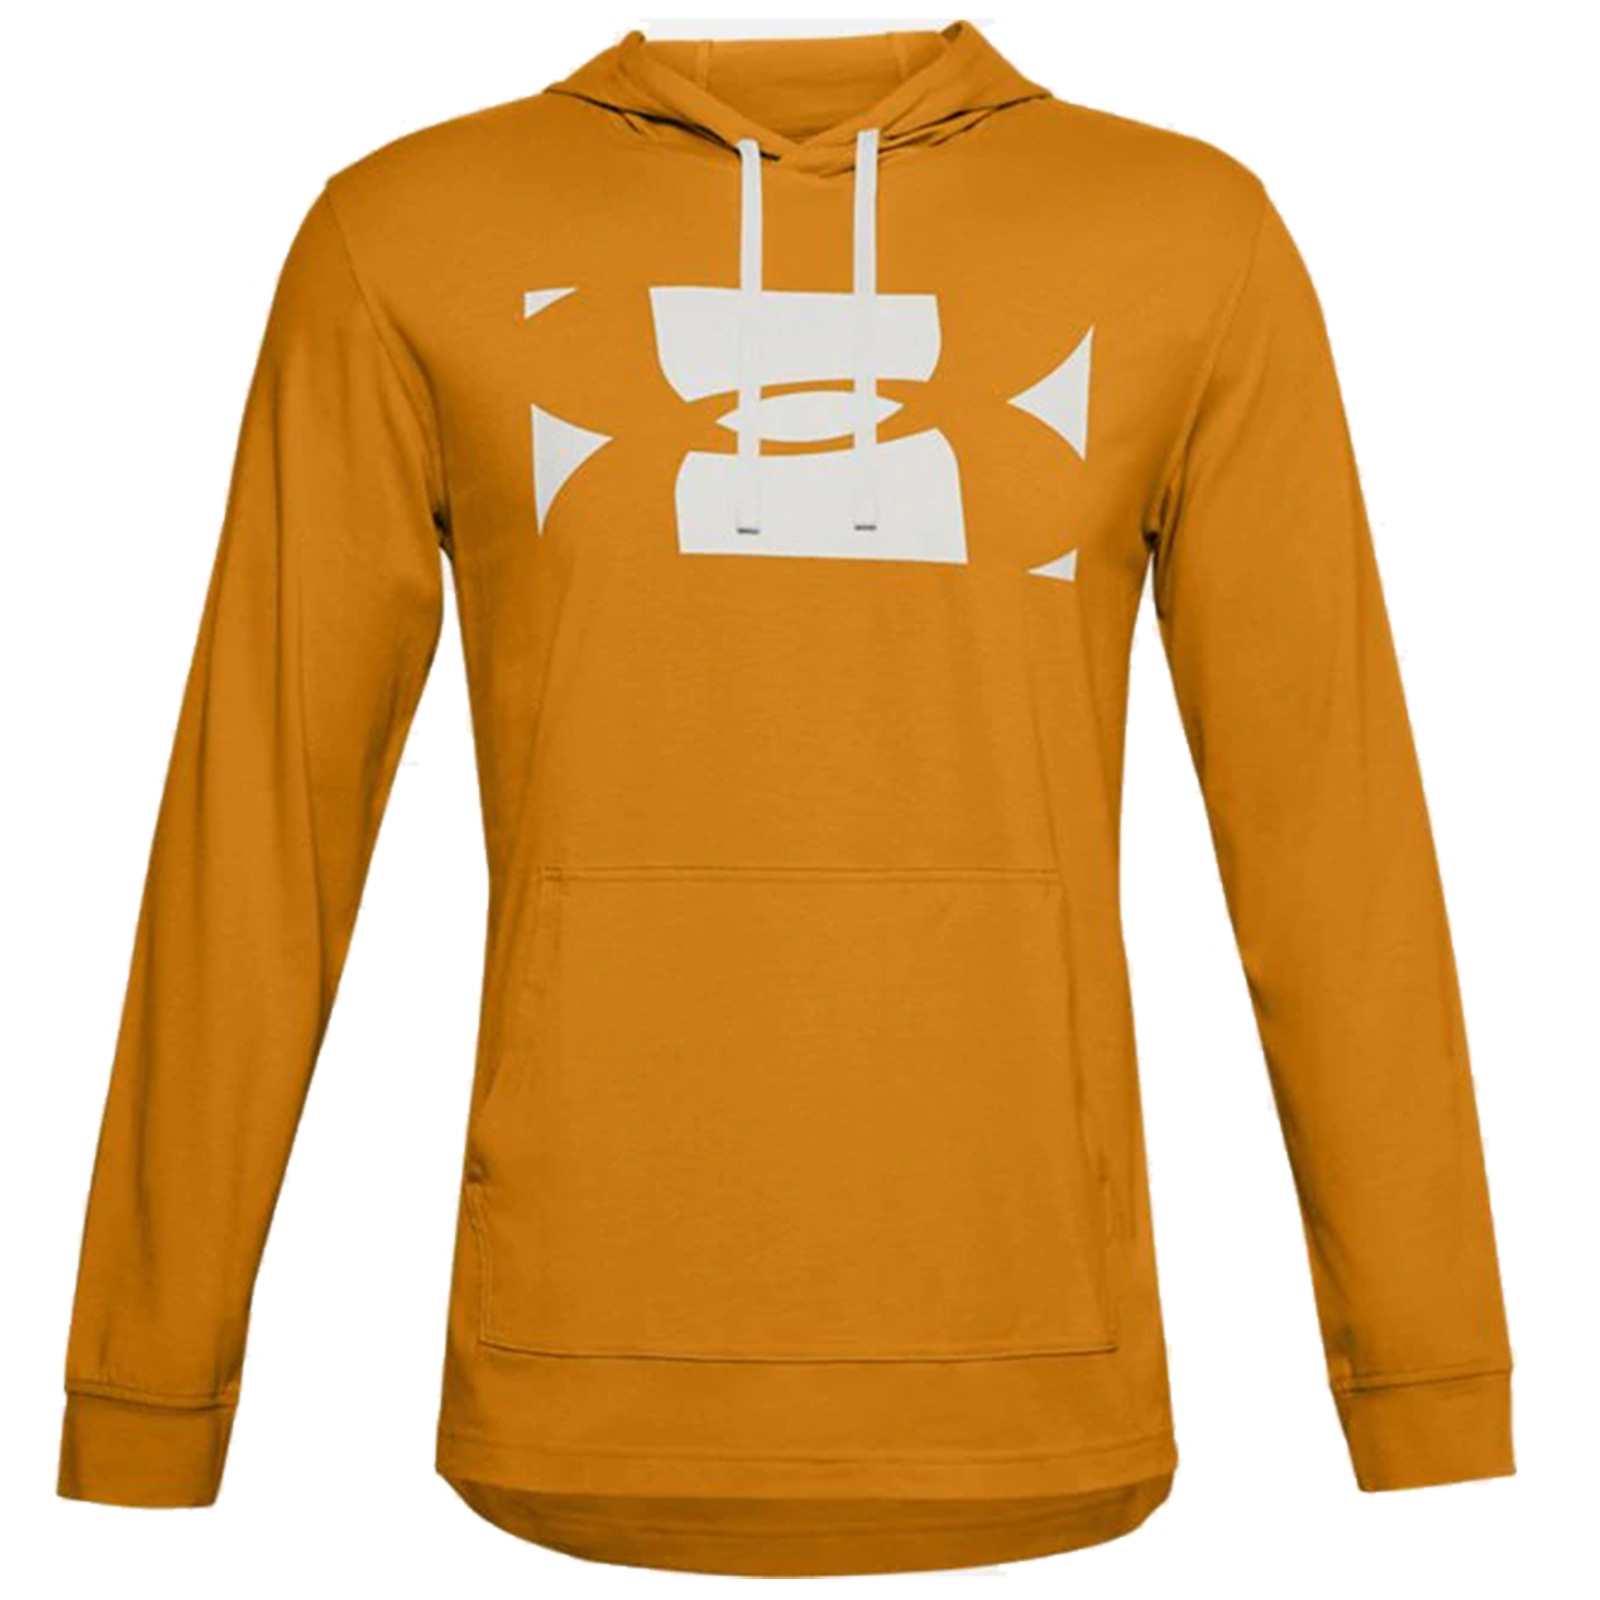 Indexbild 7 - Under Armour Mens Sportstyle Hoodie - Gym Pullover Hooded Top Sports UA